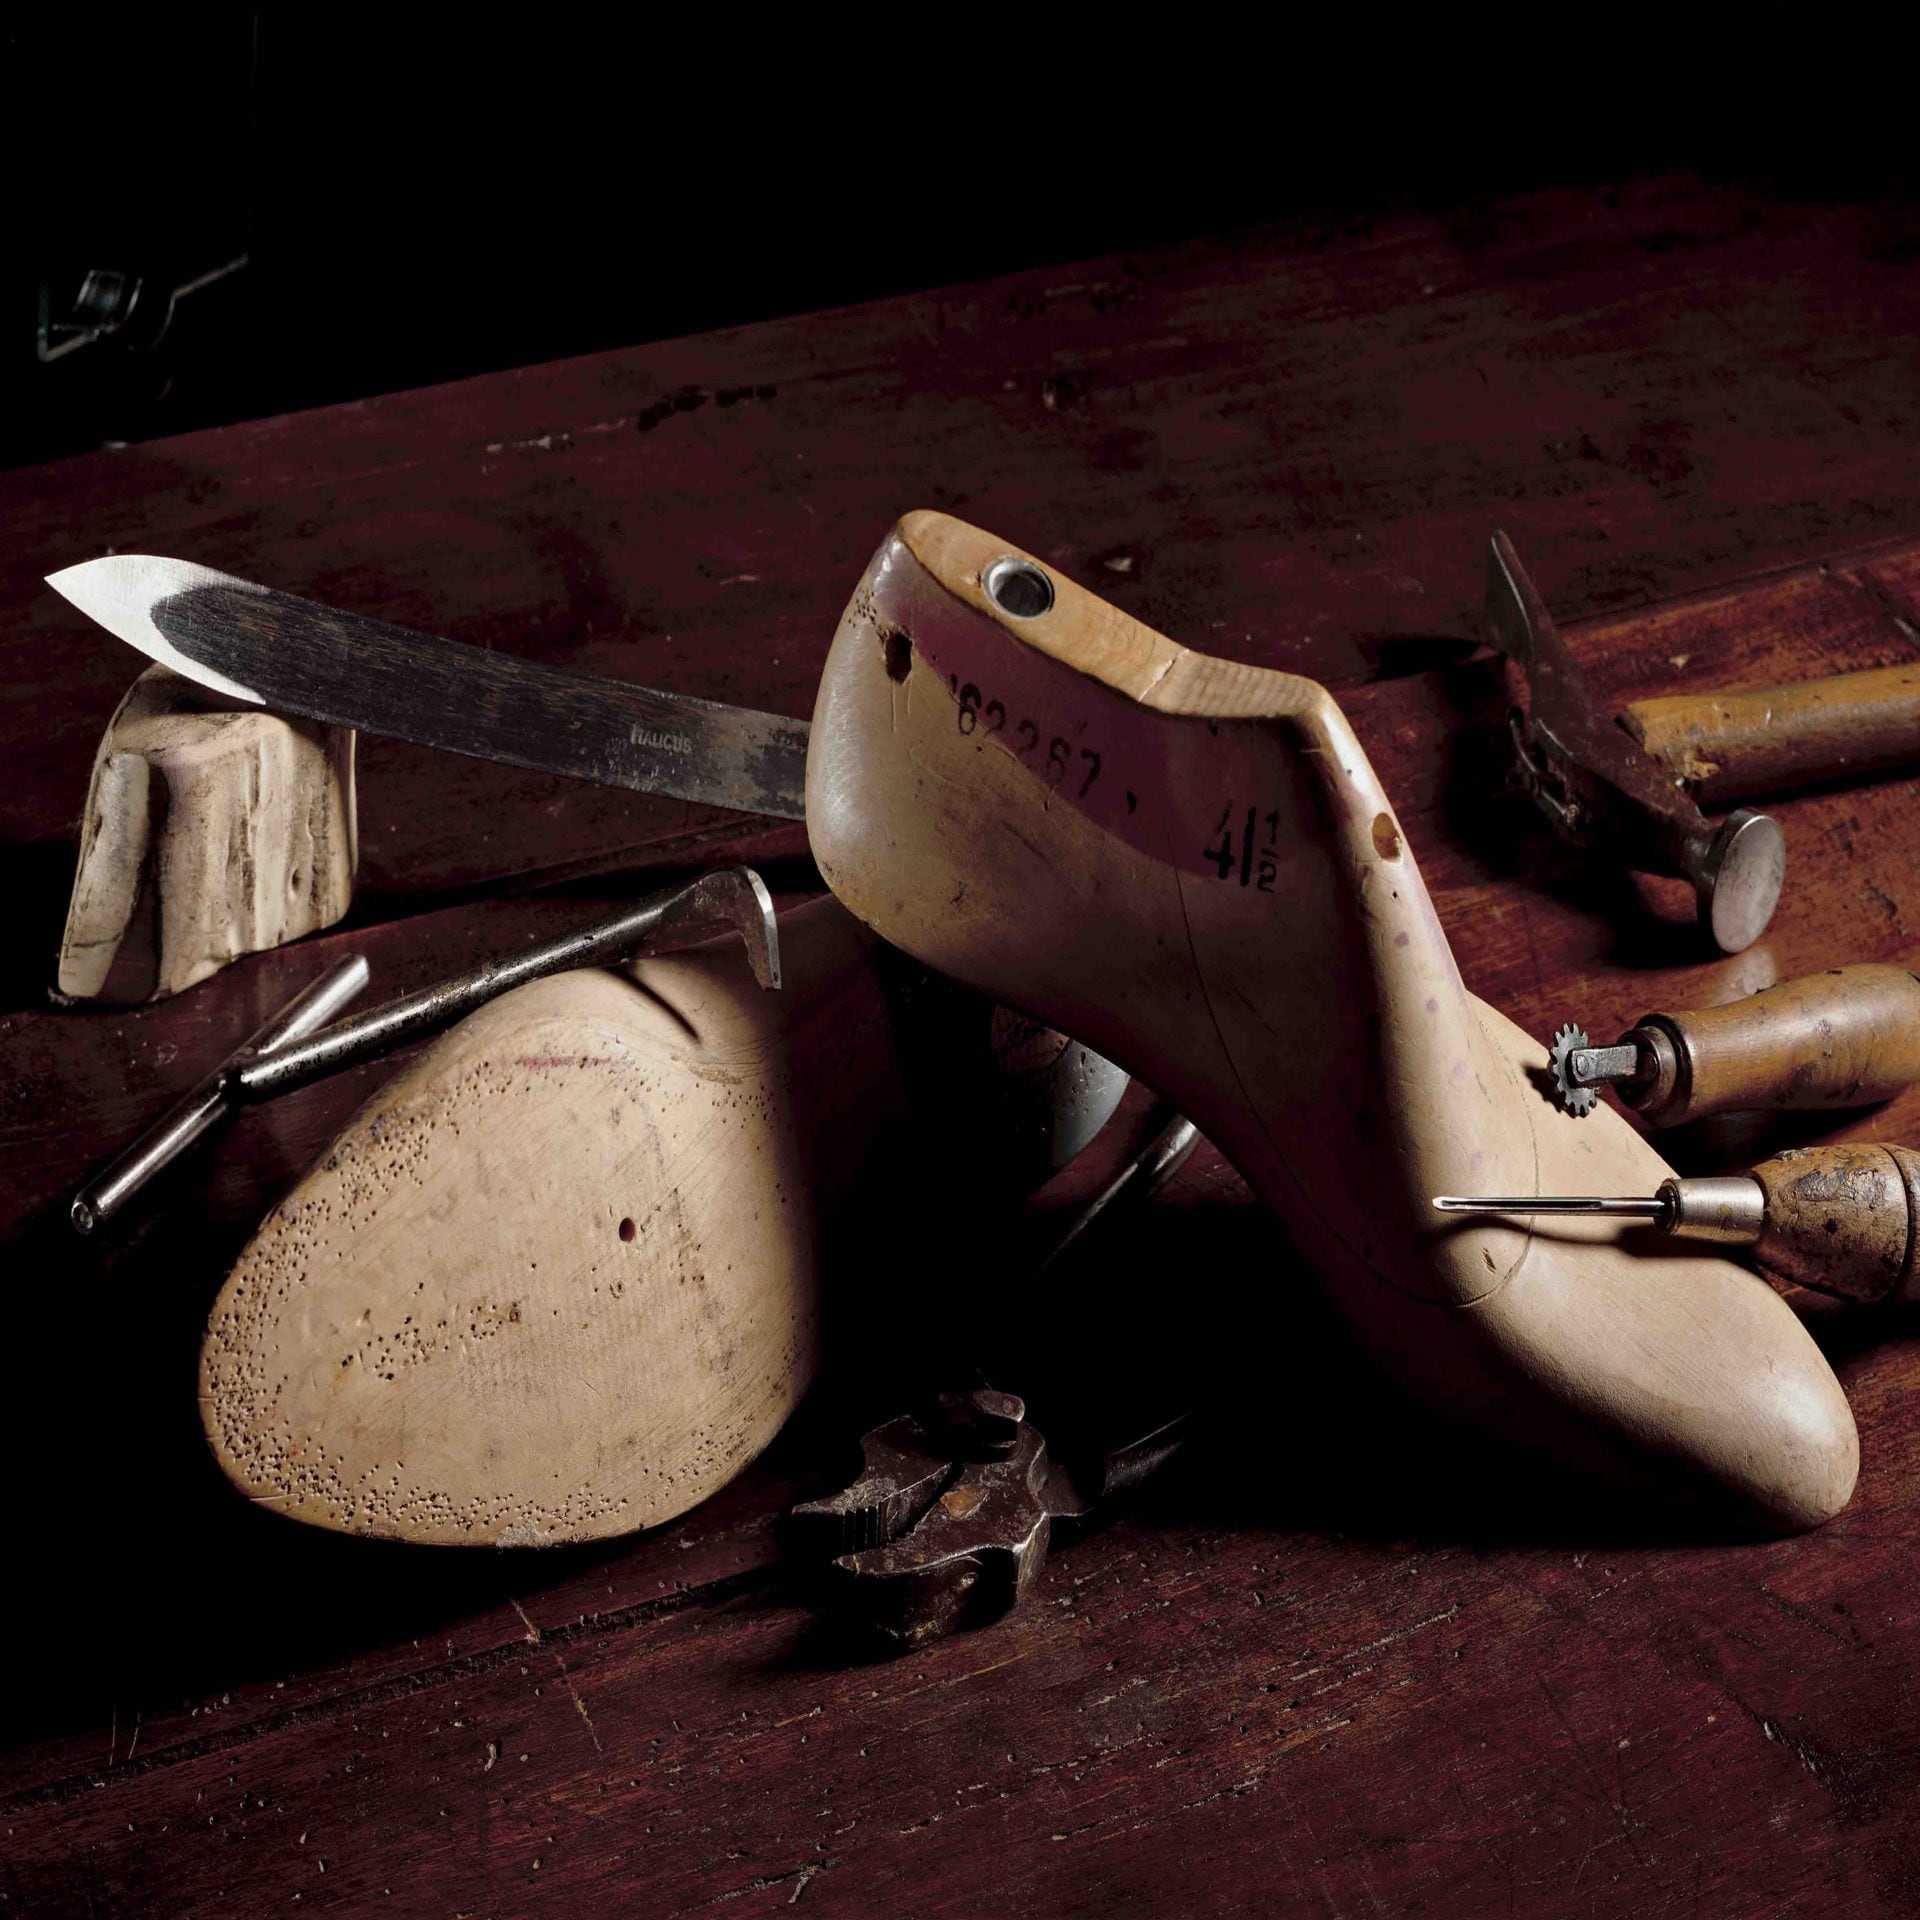 SANTONI - A PASSION FOR LEATHER